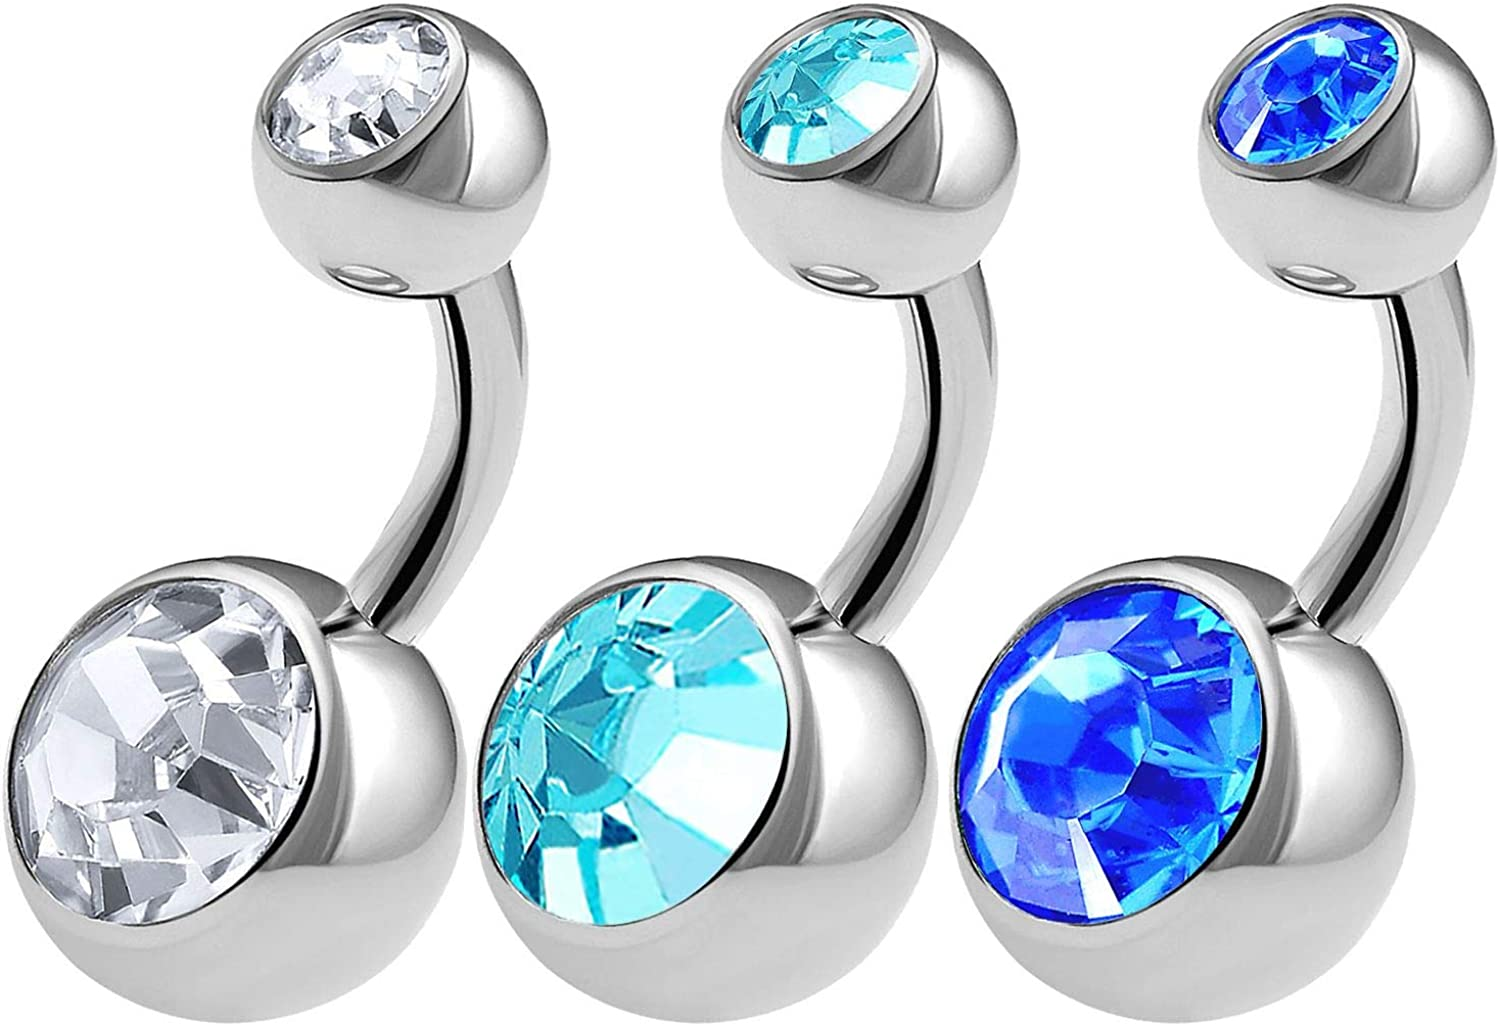 BanaVega 3PCS 316L Surgical Steel Shallow Belly Button Rings Studs 14 Gauge 1/4 6mm Clear Aquamarine Short Navel Bars Choose Colors